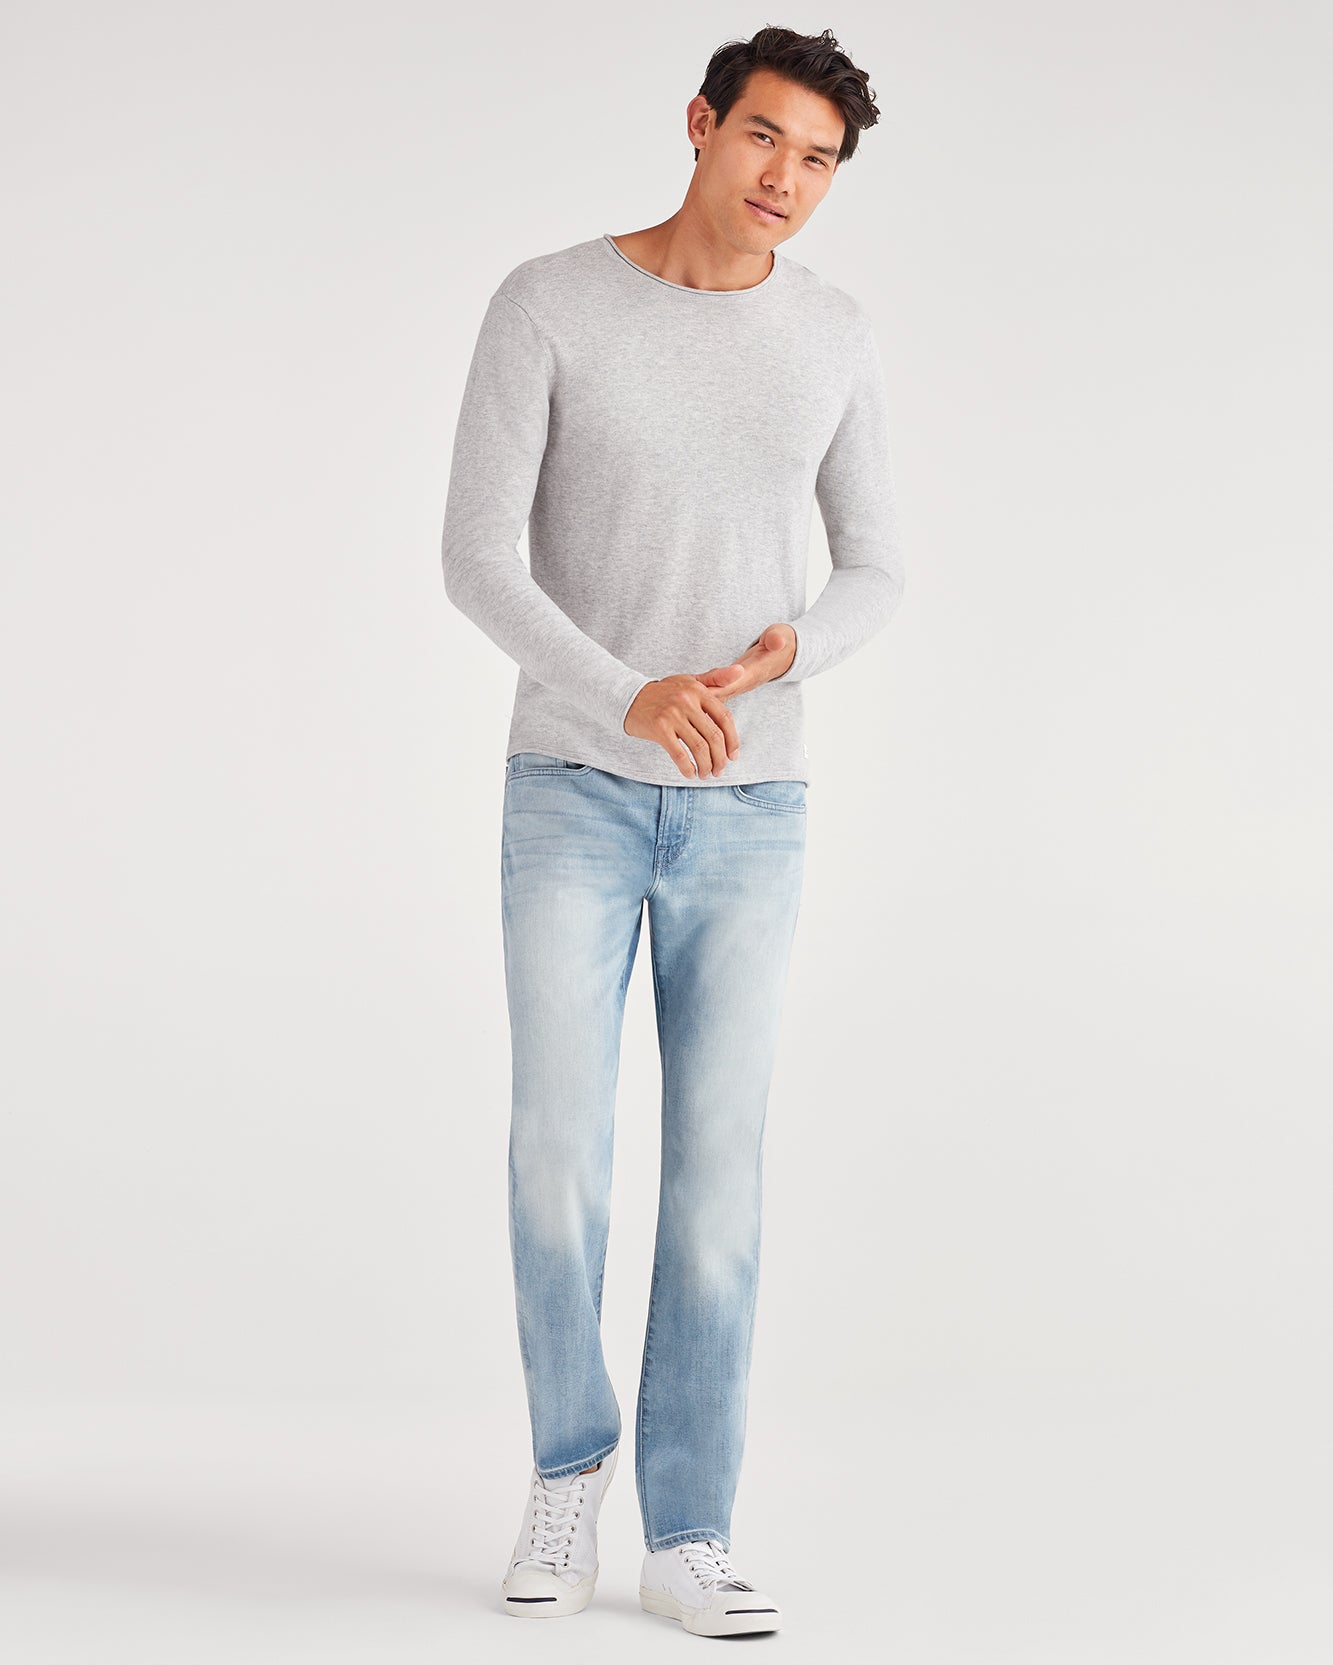 Image of Luxe Performance Slim Slimmy with Clean Pocket in Sunsoaked